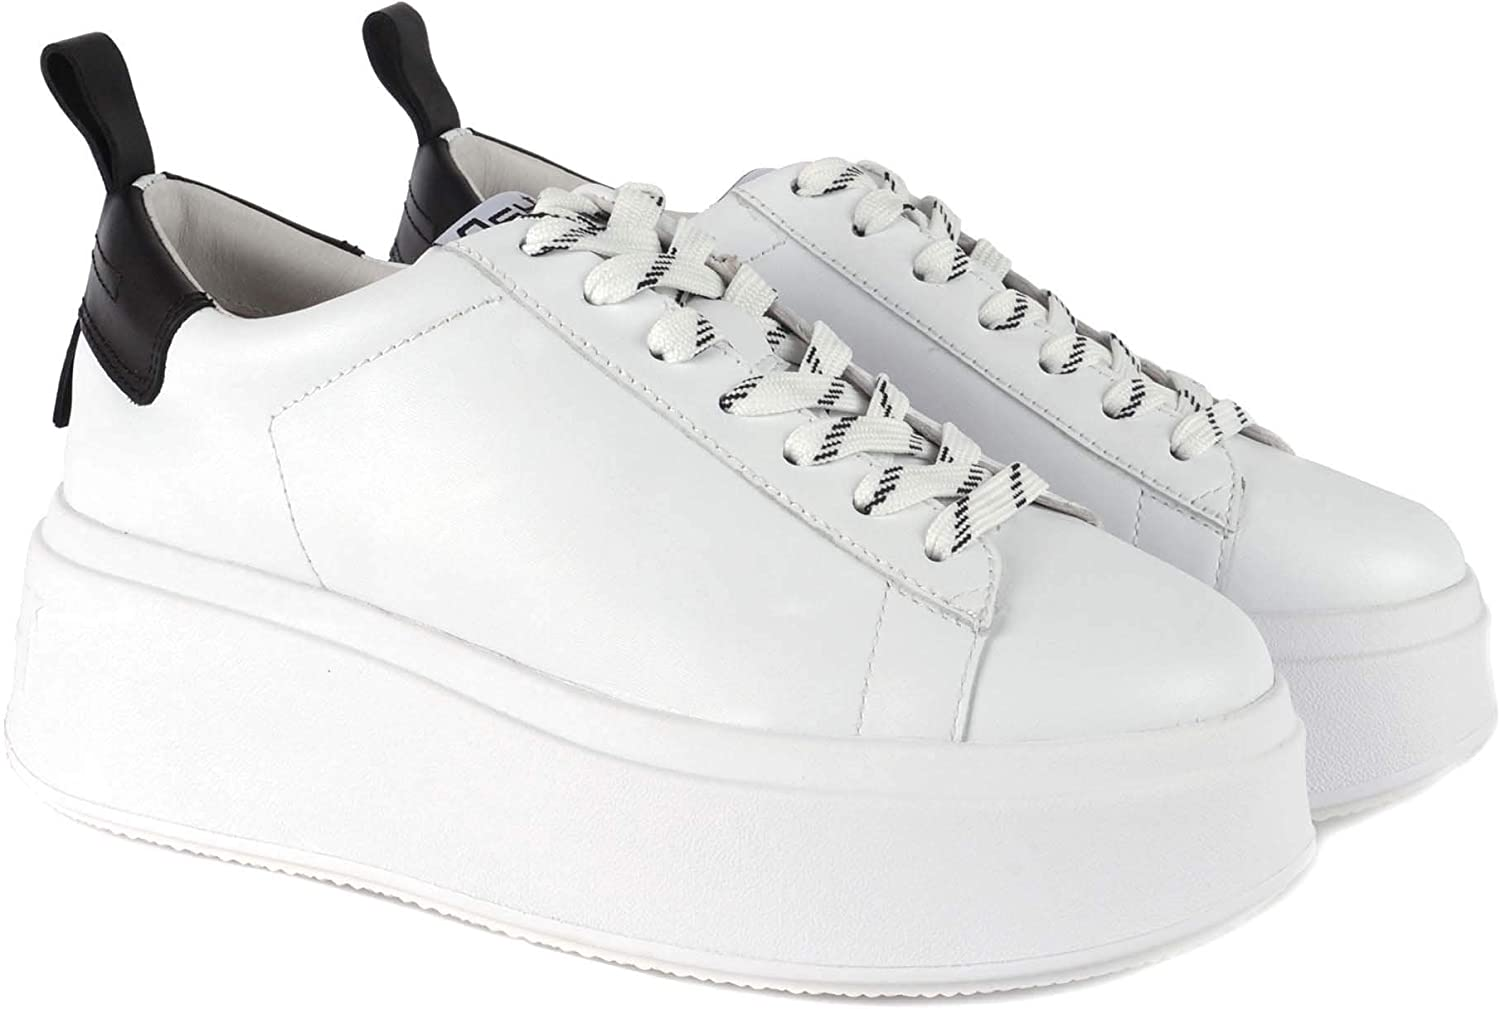 ASH Footwear Moon White and Black Platform Trainer White Black